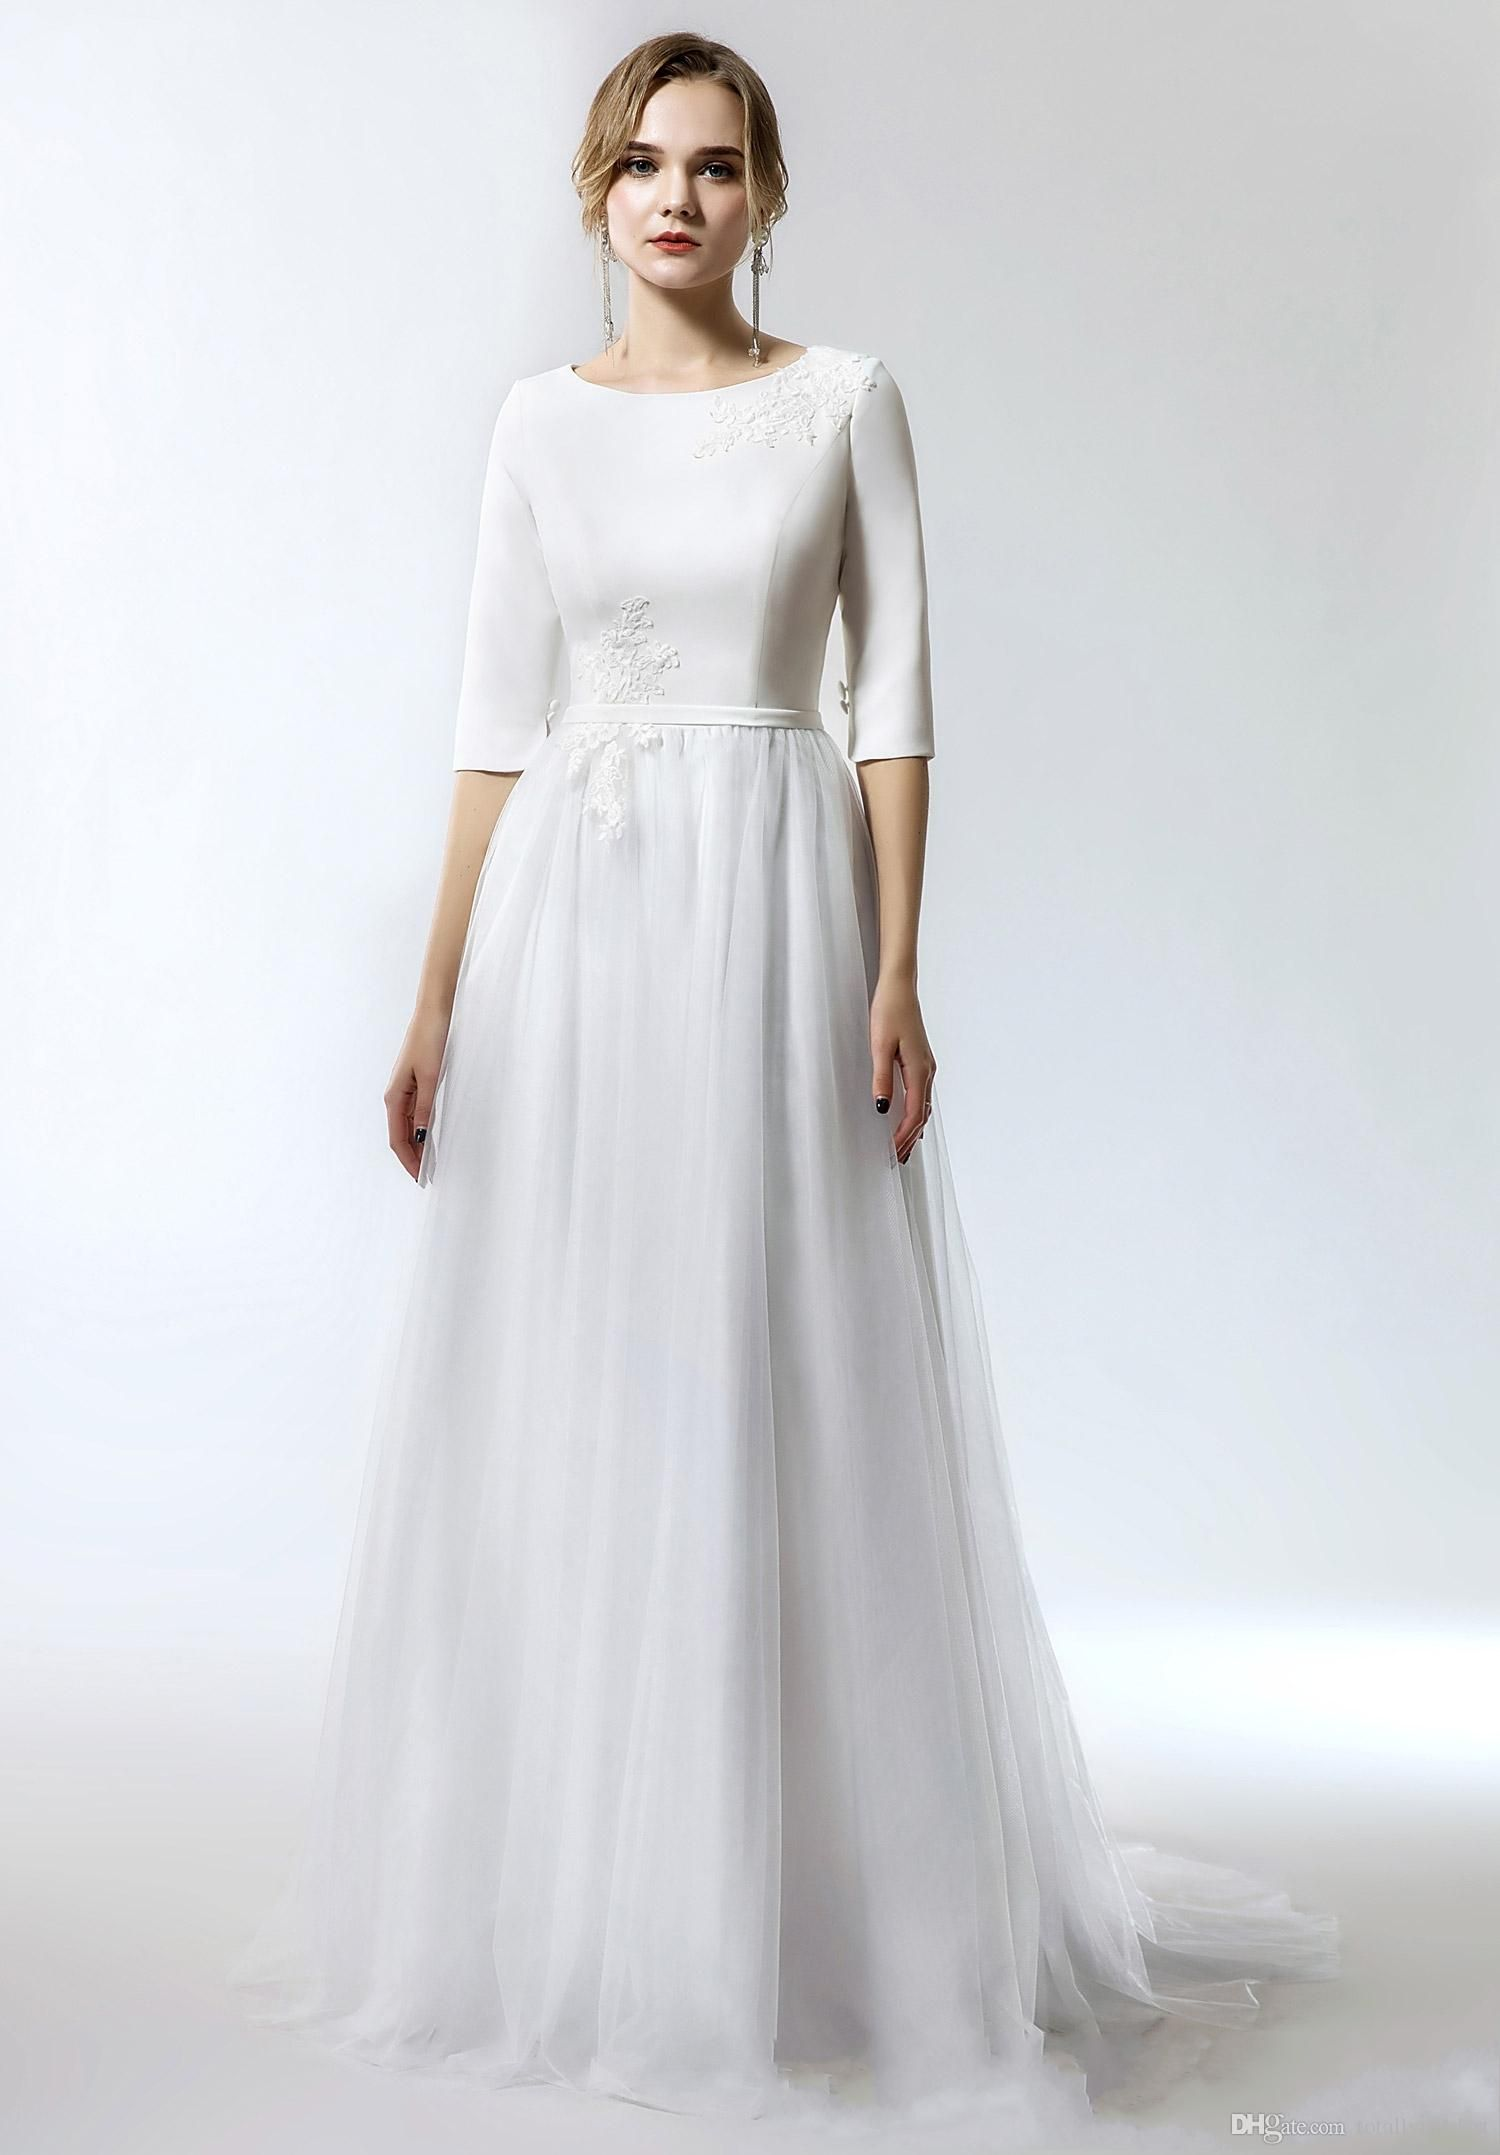 Modest Wedding Gown With Sleeves in 2020 Cheap simple